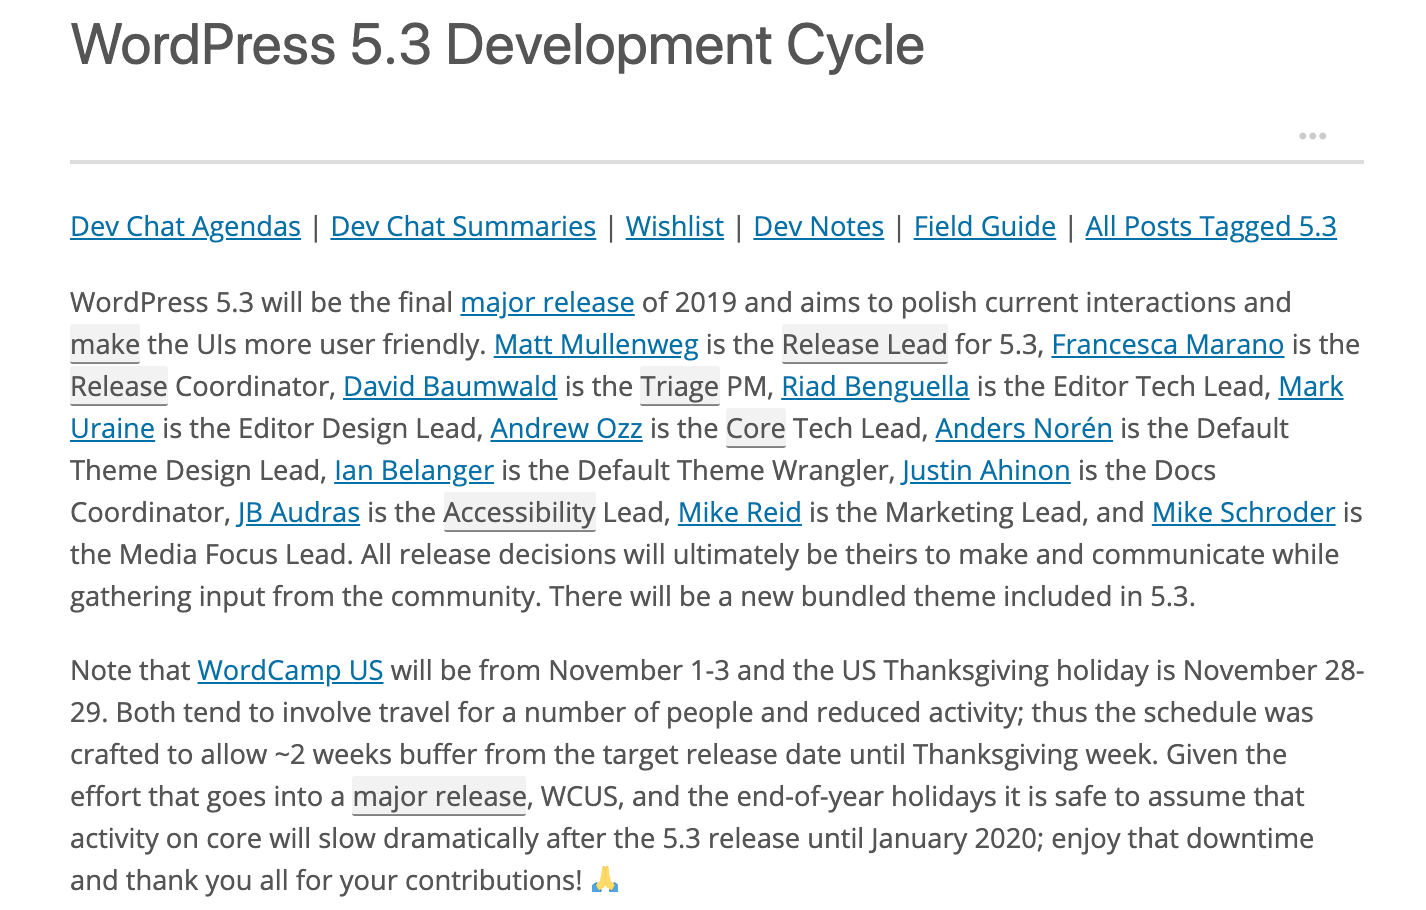 a-non-technical-release-leads-journey-to-becoming-a-mentor-for-wordpress-core-development A Non-Technical Release Lead's Journey to Becoming a Mentor for WordPress Core Development